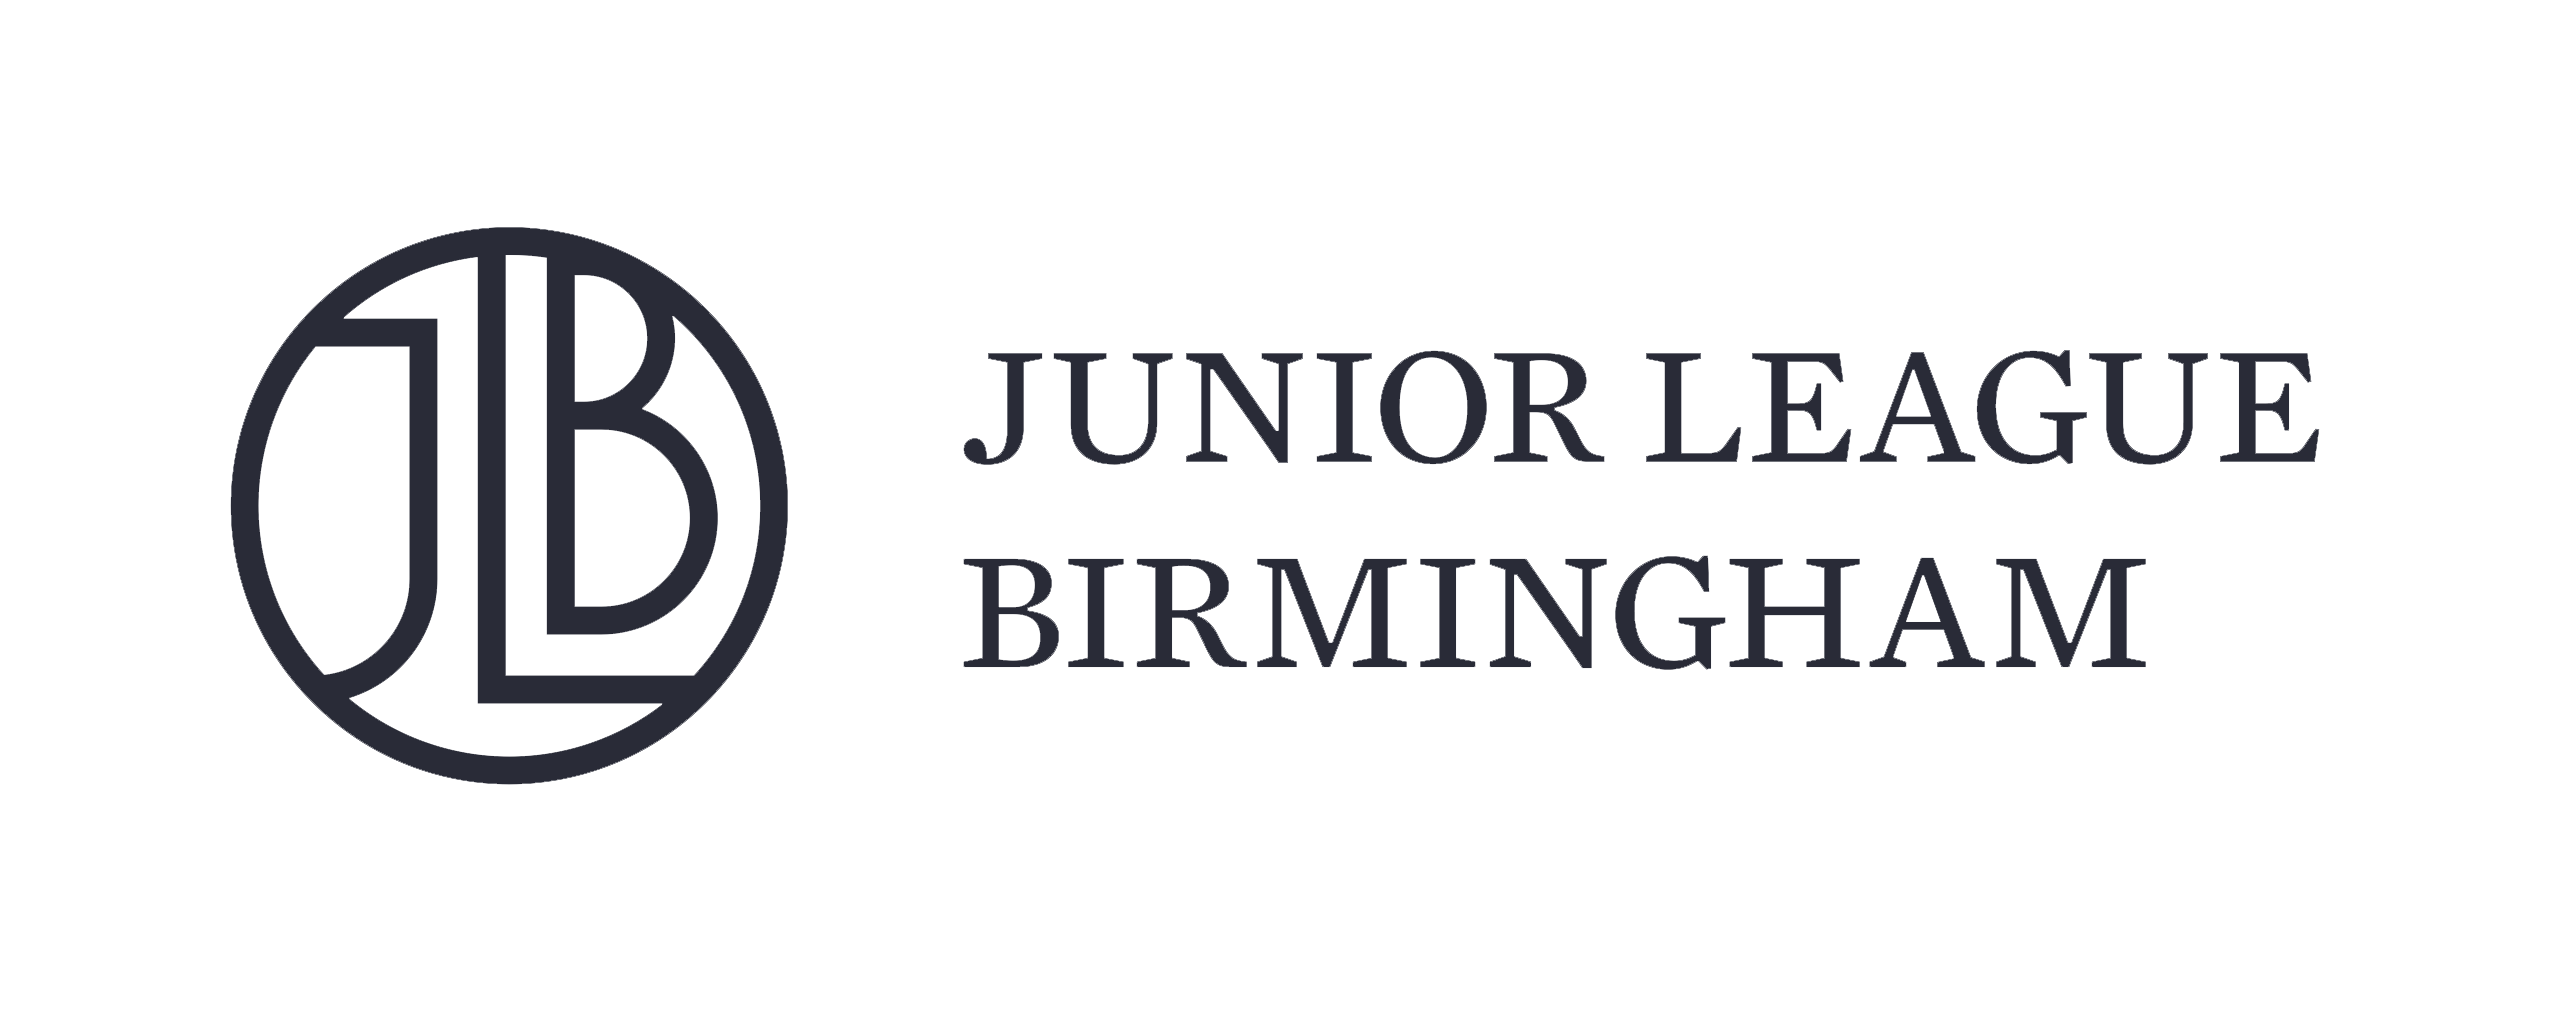 The Junior League of Birmingham